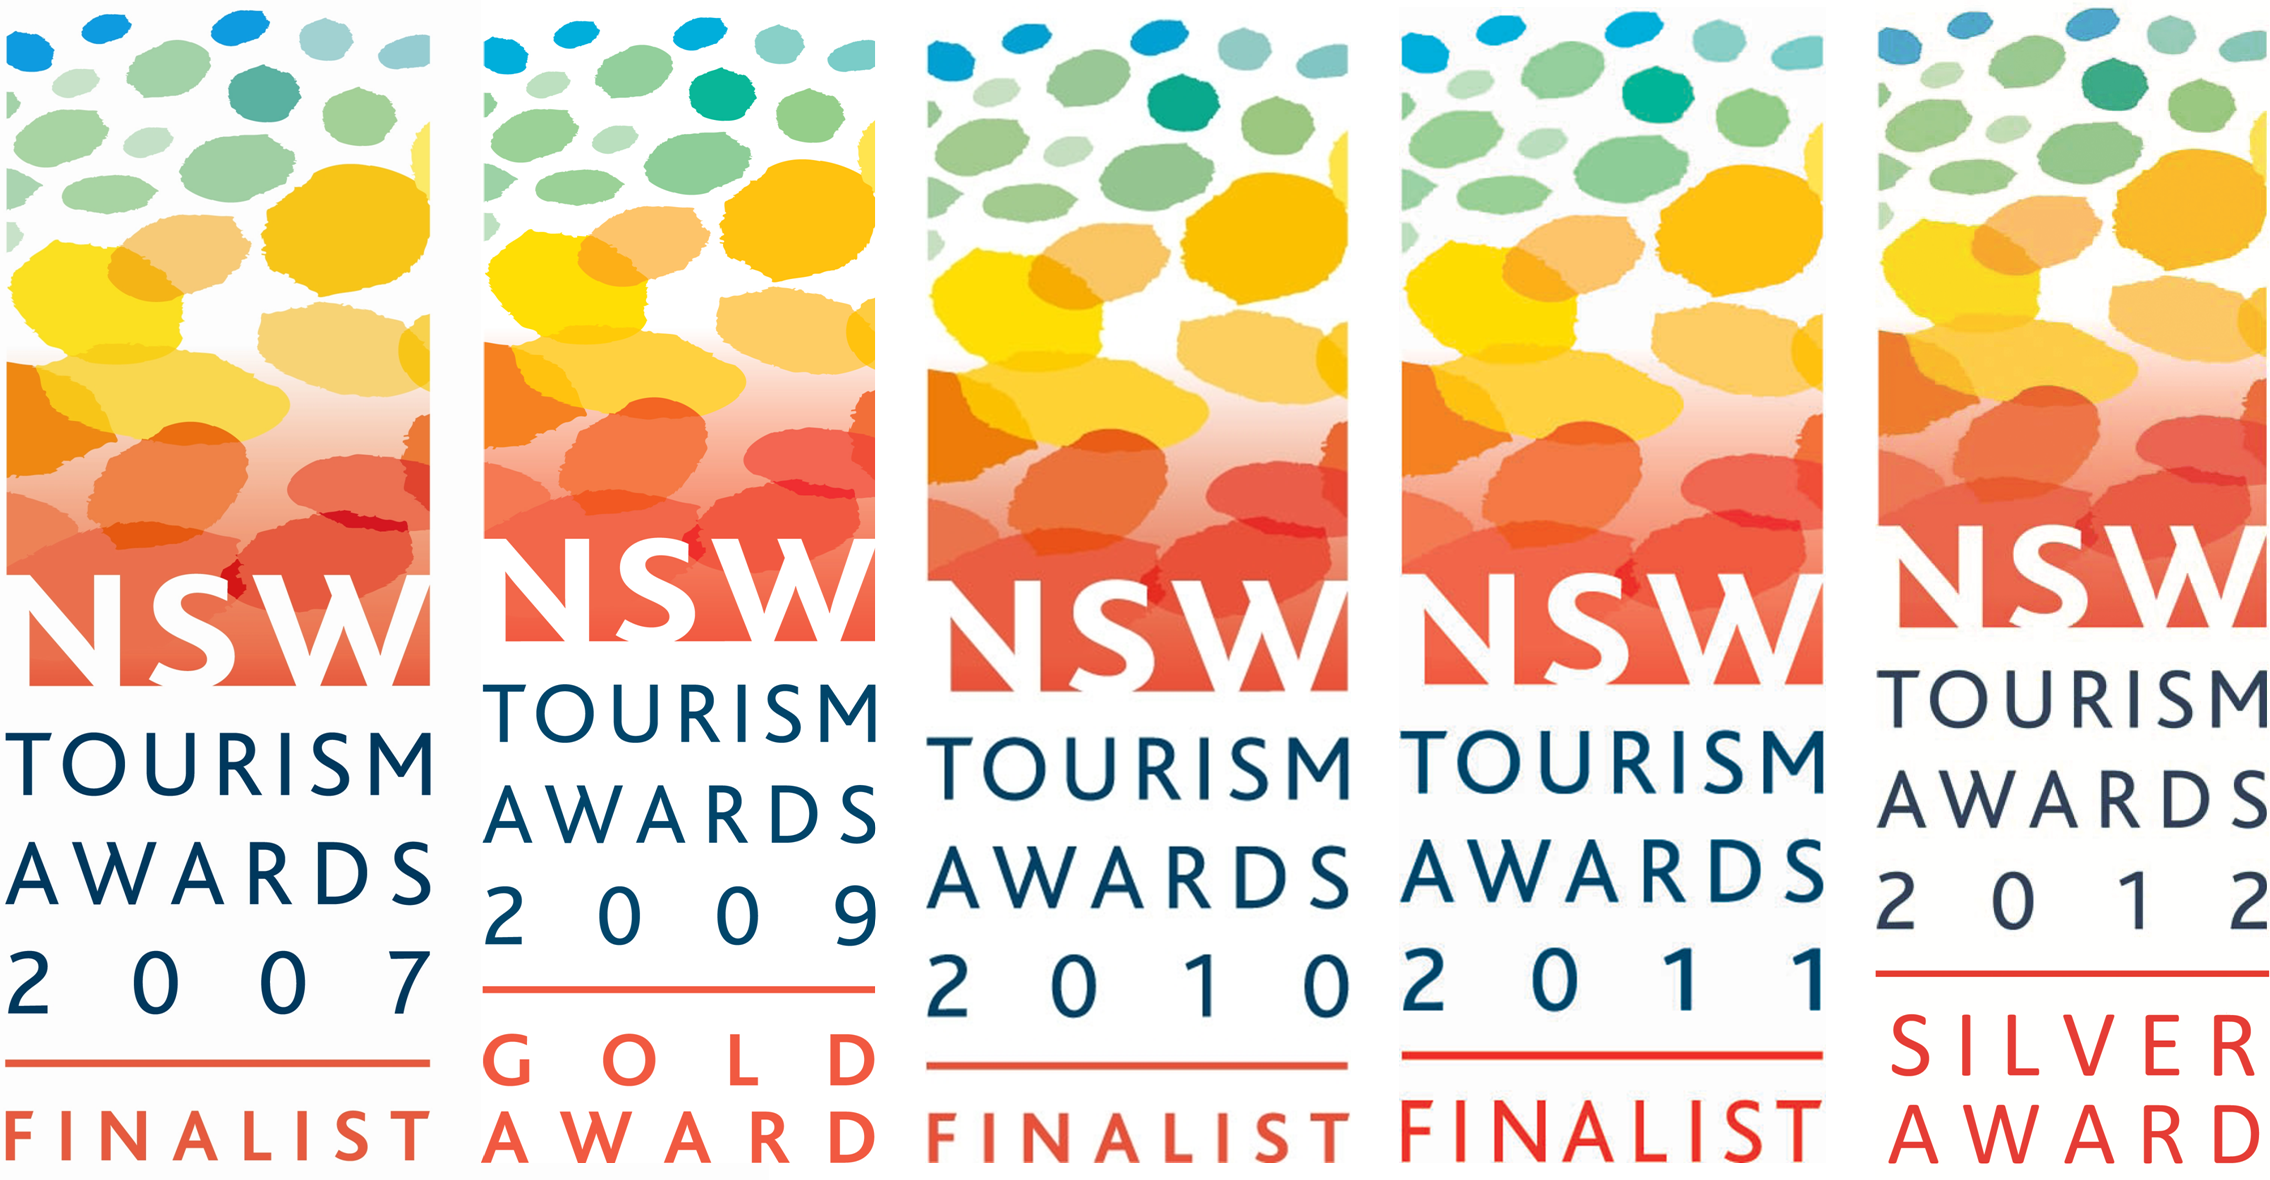 NSW Tourism Awards Best Accommodation, The Vintry Hunter Valley